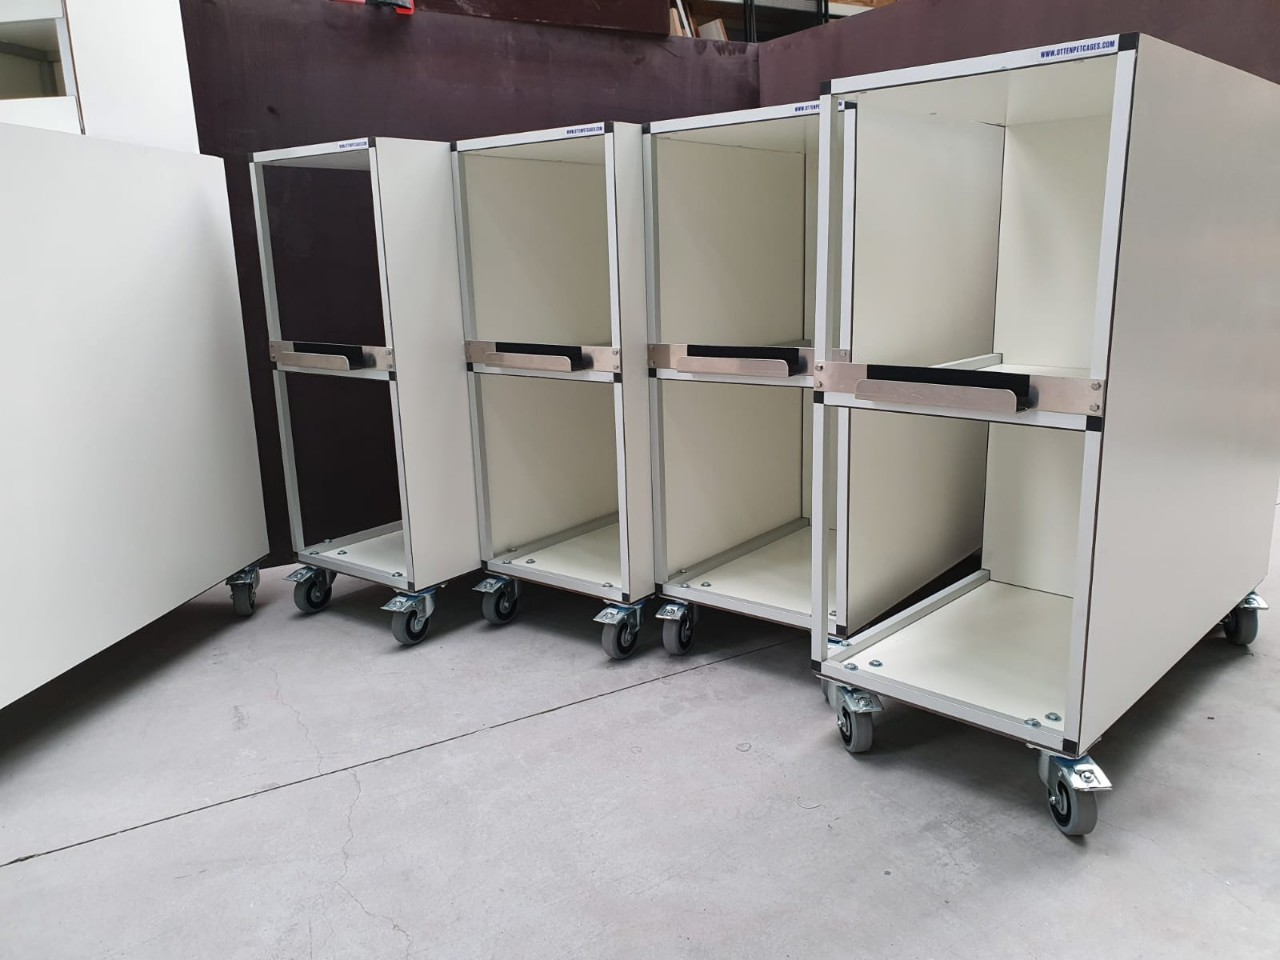 Tooltrolly # (10)